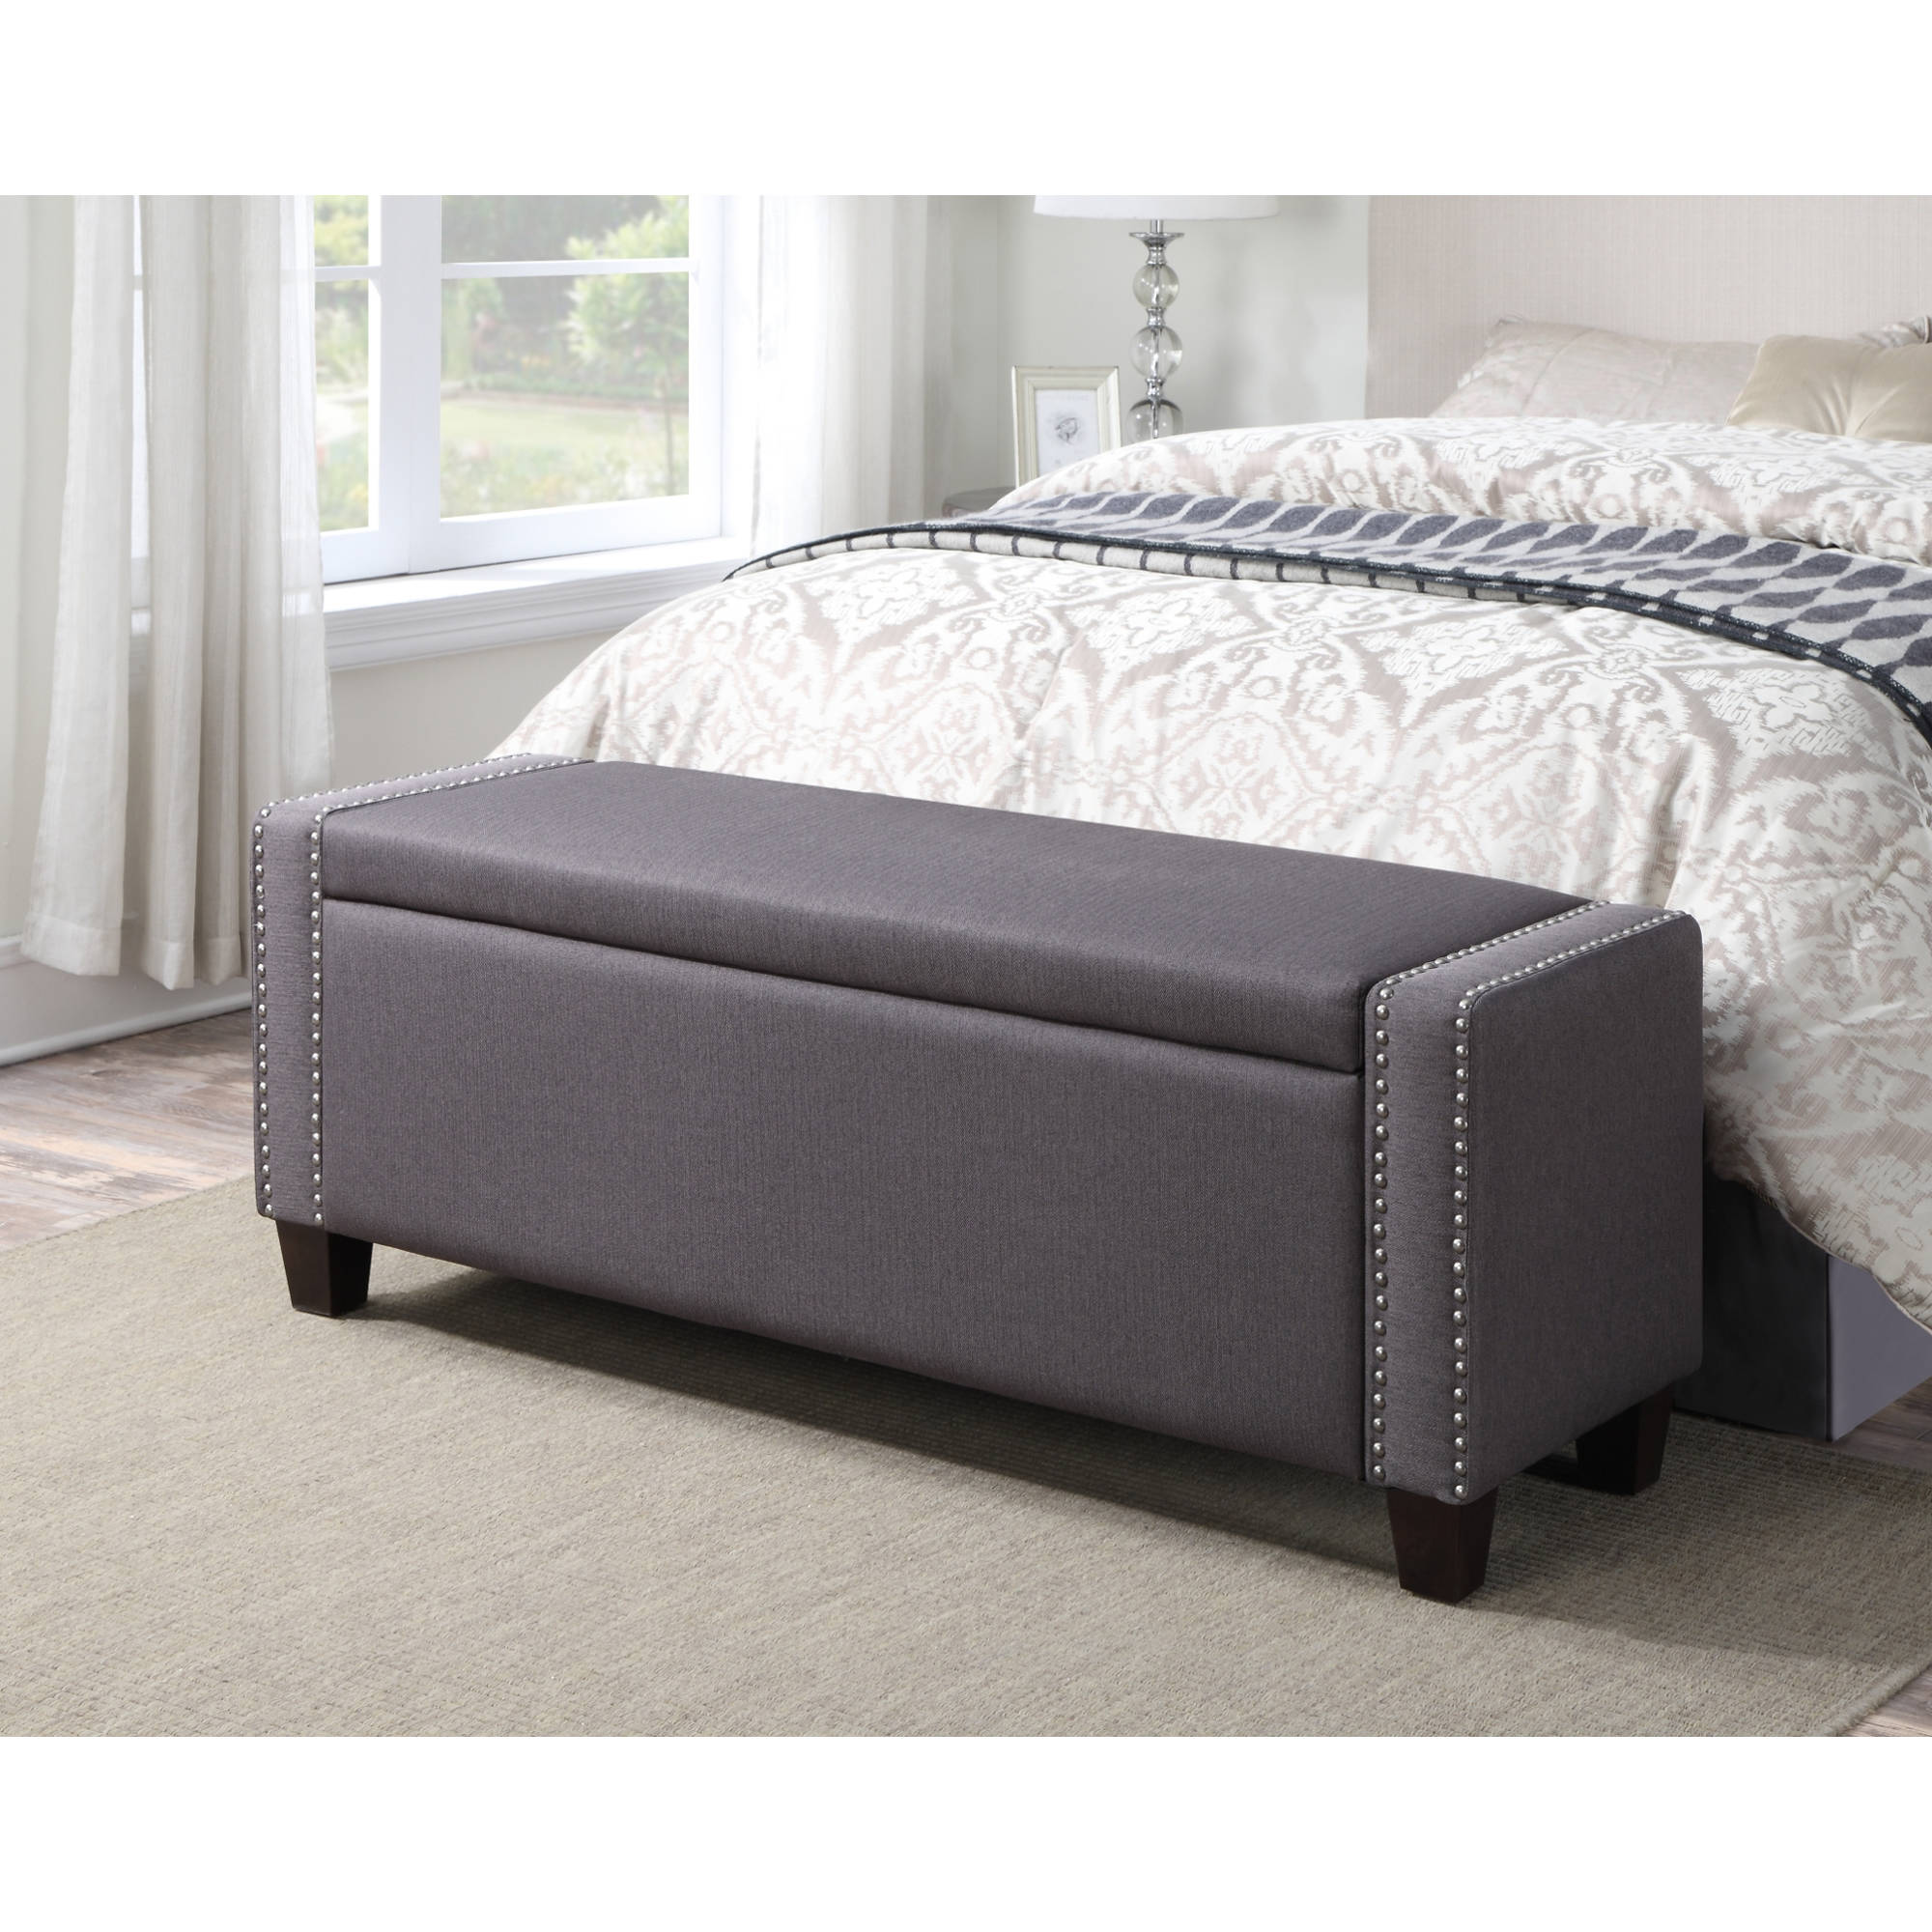 Storage Bed Bench Trespass Slate